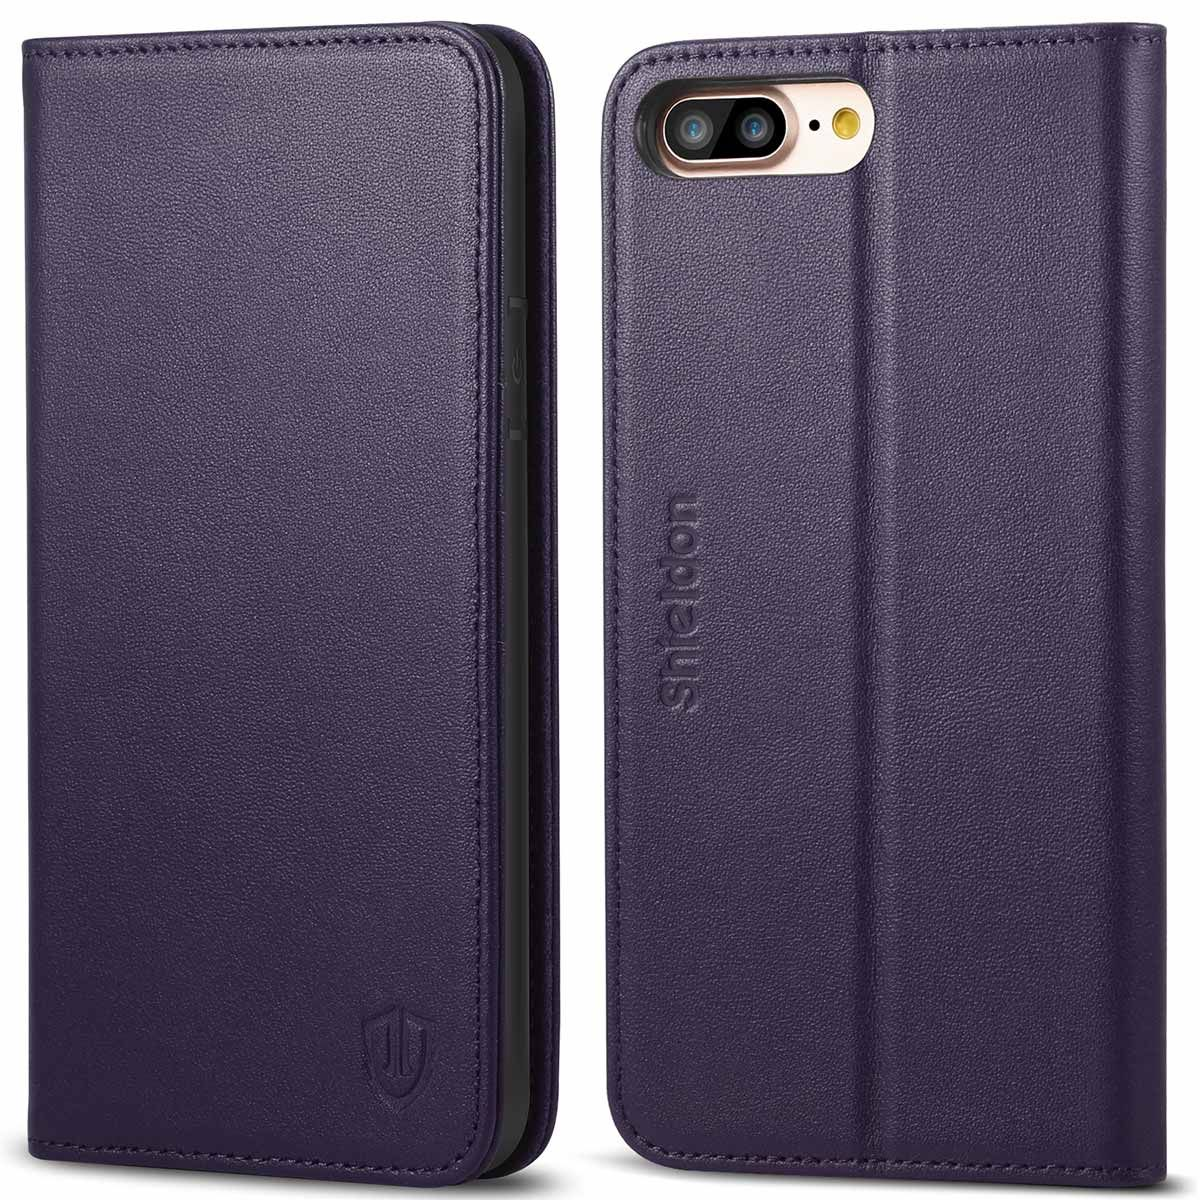 37aab27591 SHIELDON iPhone 8 Plus Wallet Case - Purple color Genuine Leather ...